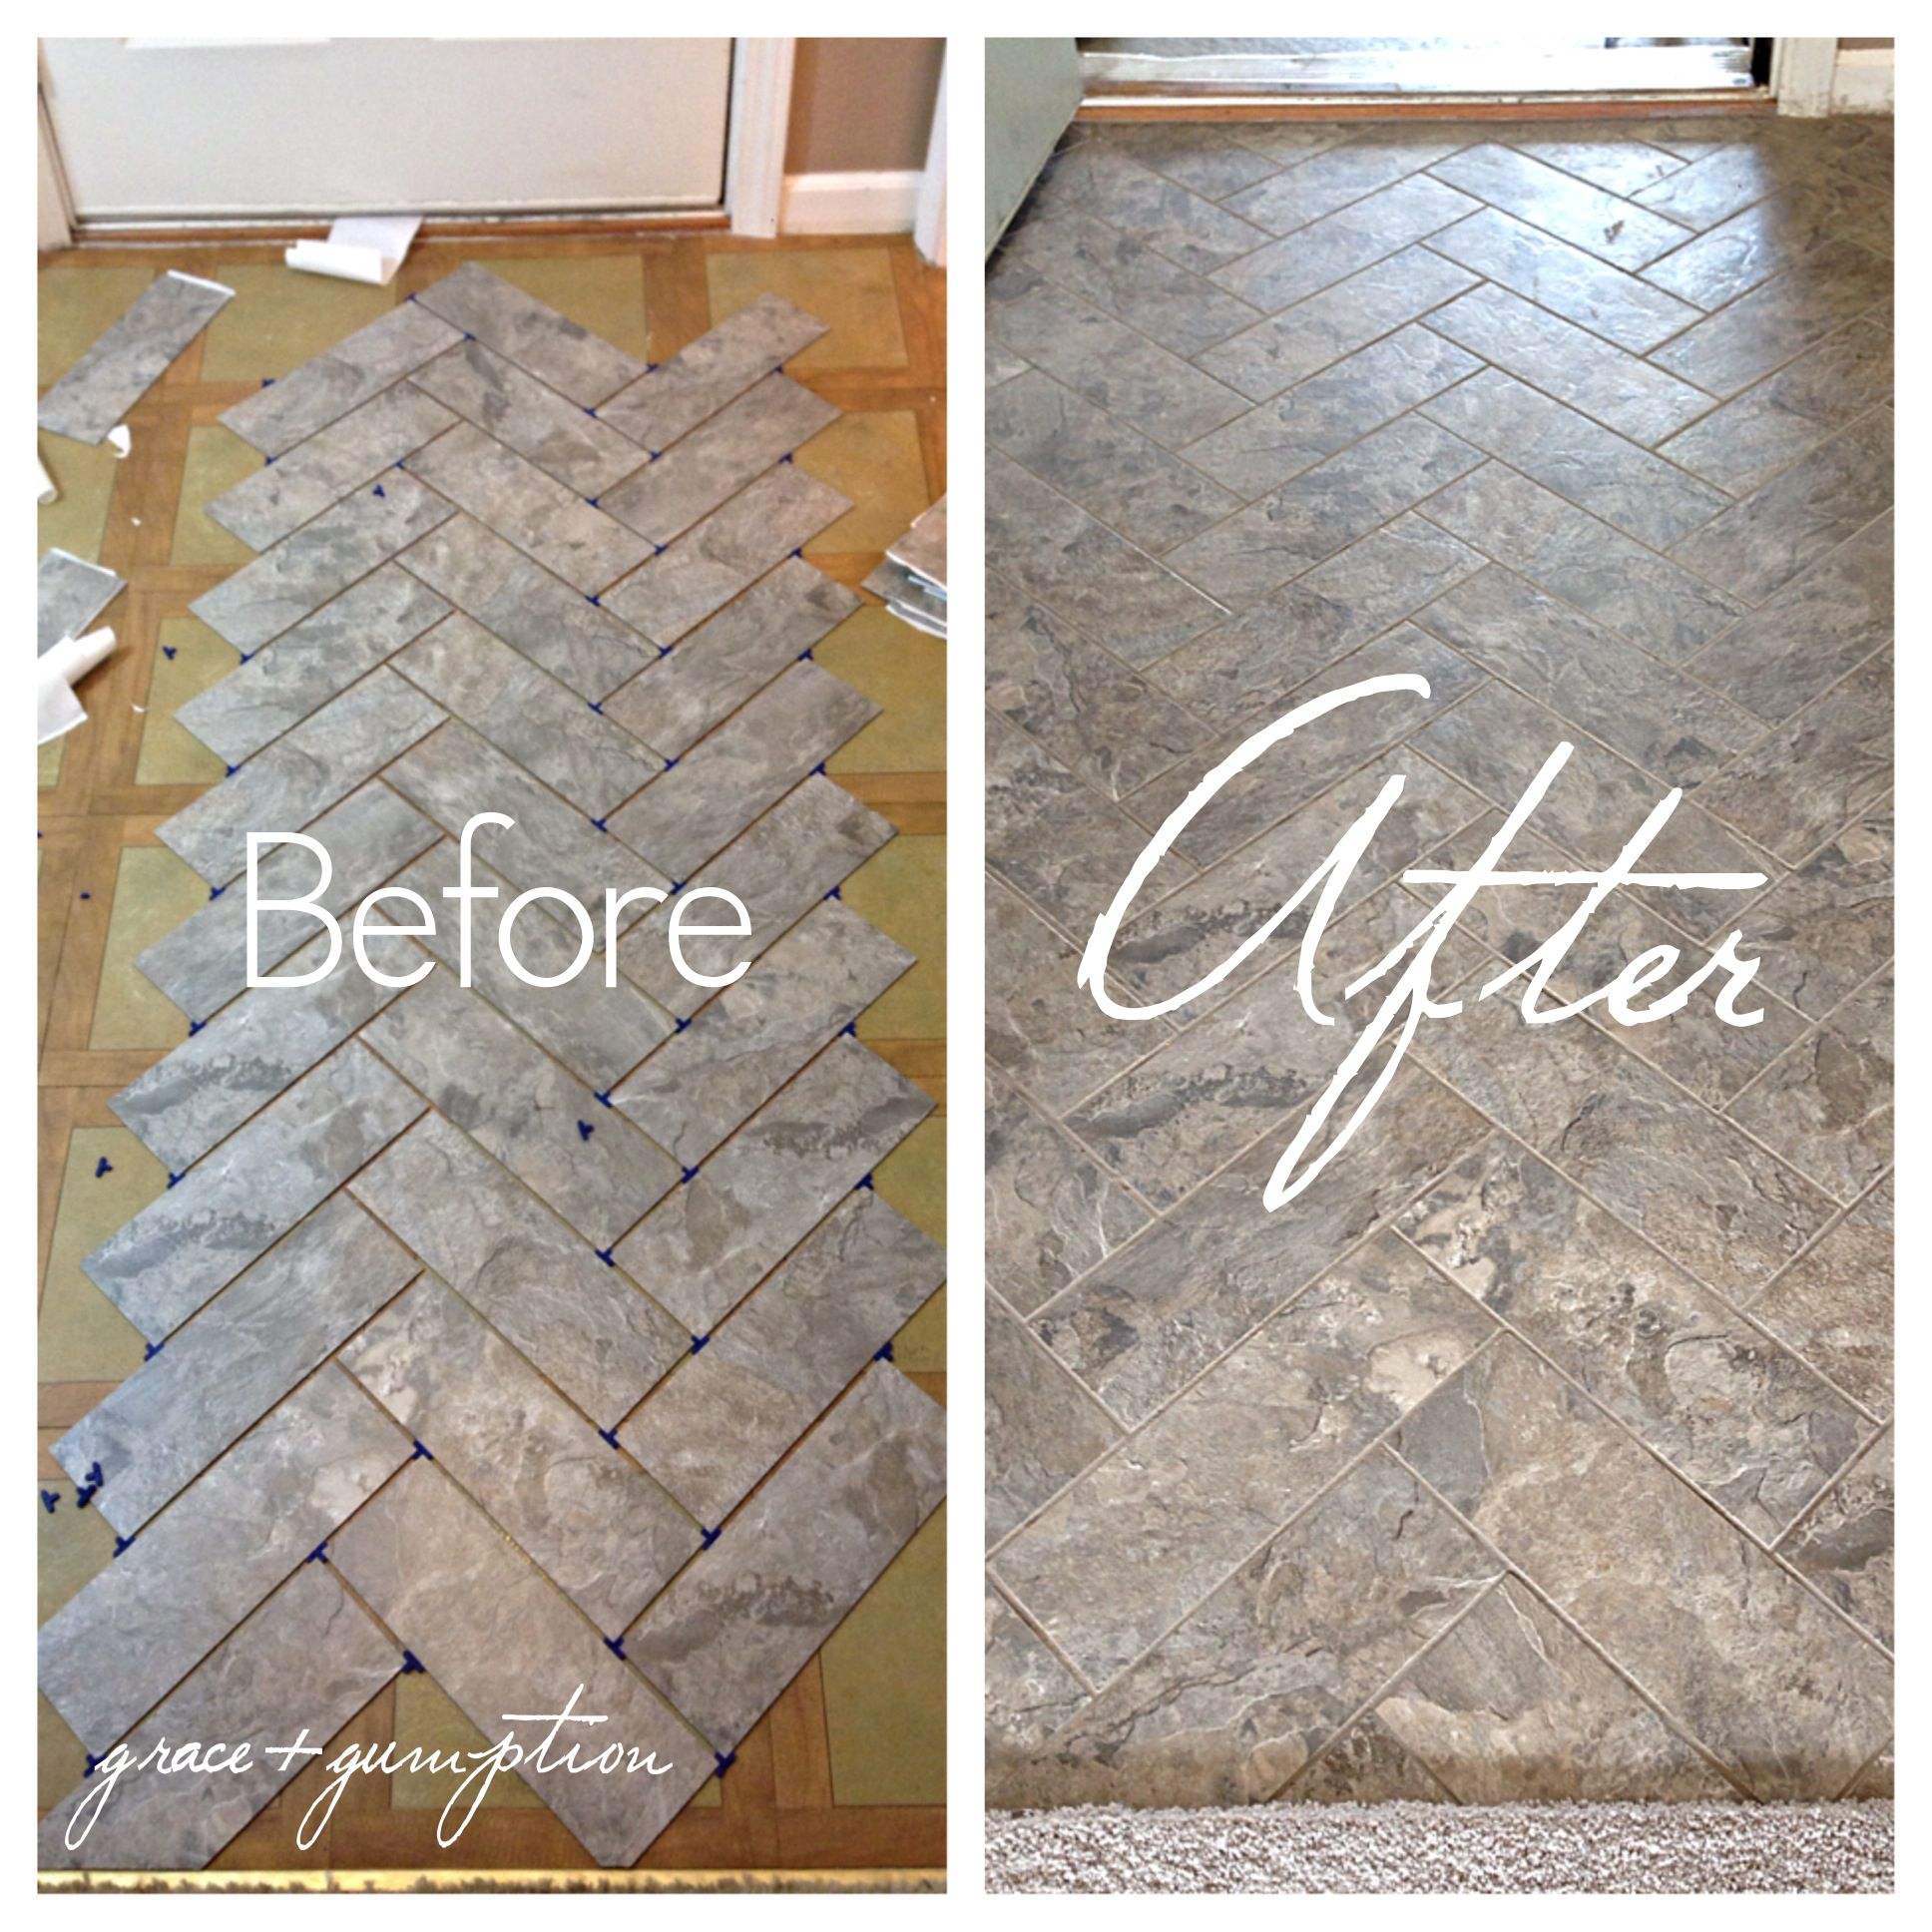 Diy herringbone peel n stick tile floor before and after by grace diy herringbone peel n stick tile floor before and after by grace gumption dailygadgetfo Choice Image